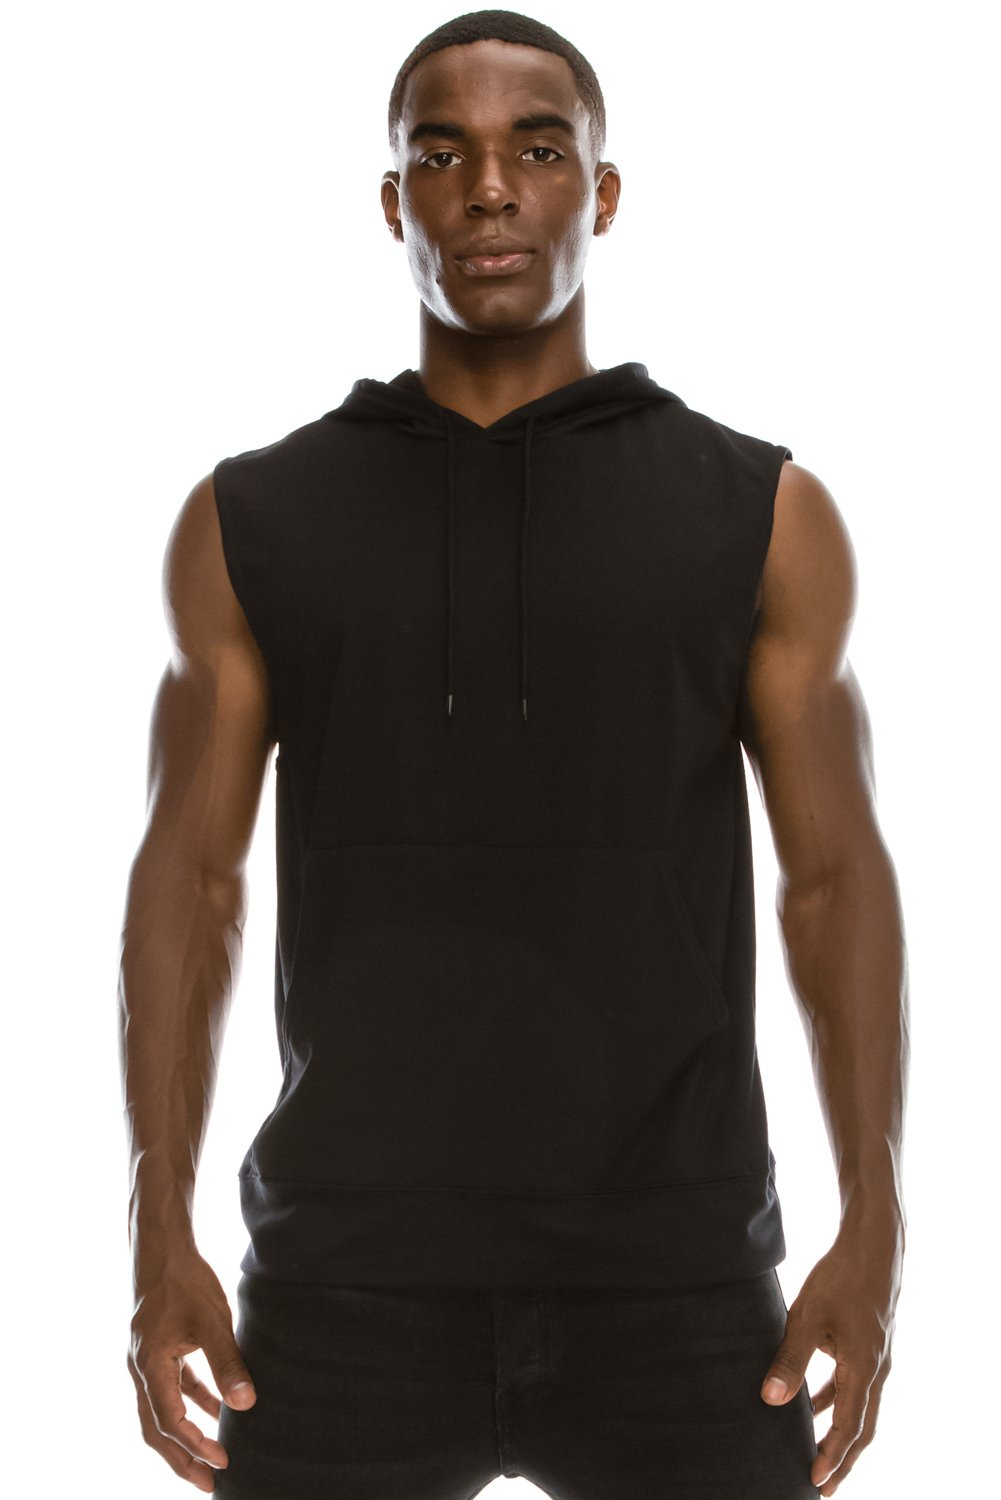 JC DISTRO Mens Hipster Hip Hop Active Lightweight Sleeveless Black Hoodie Large